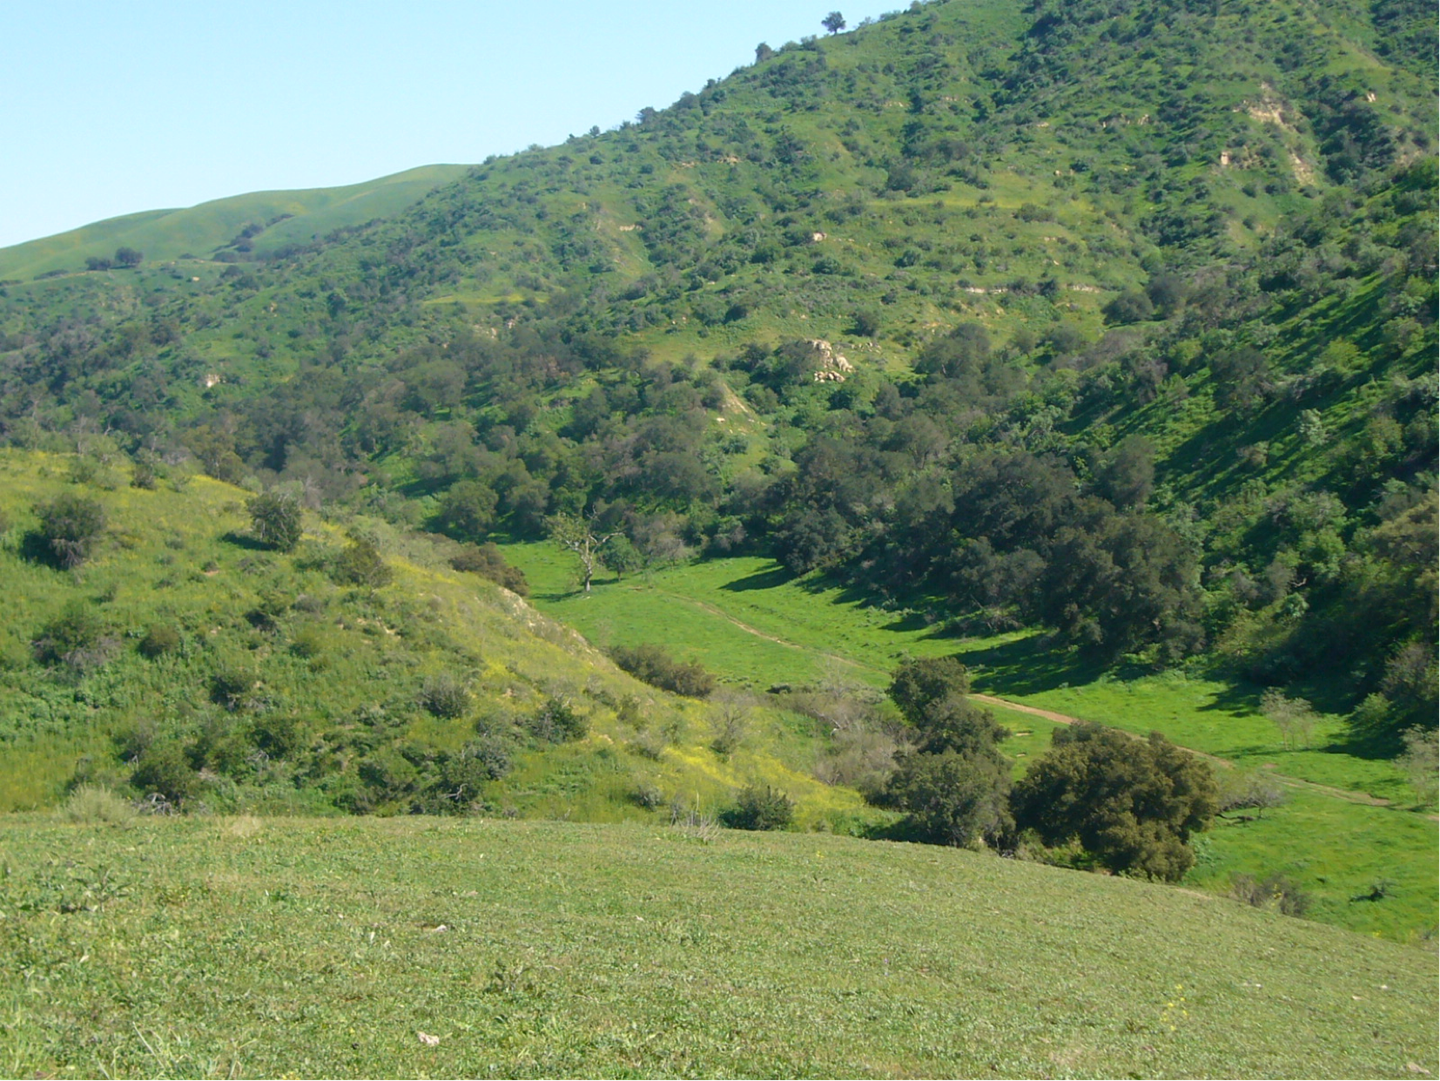 Photo of Soquel Canyon